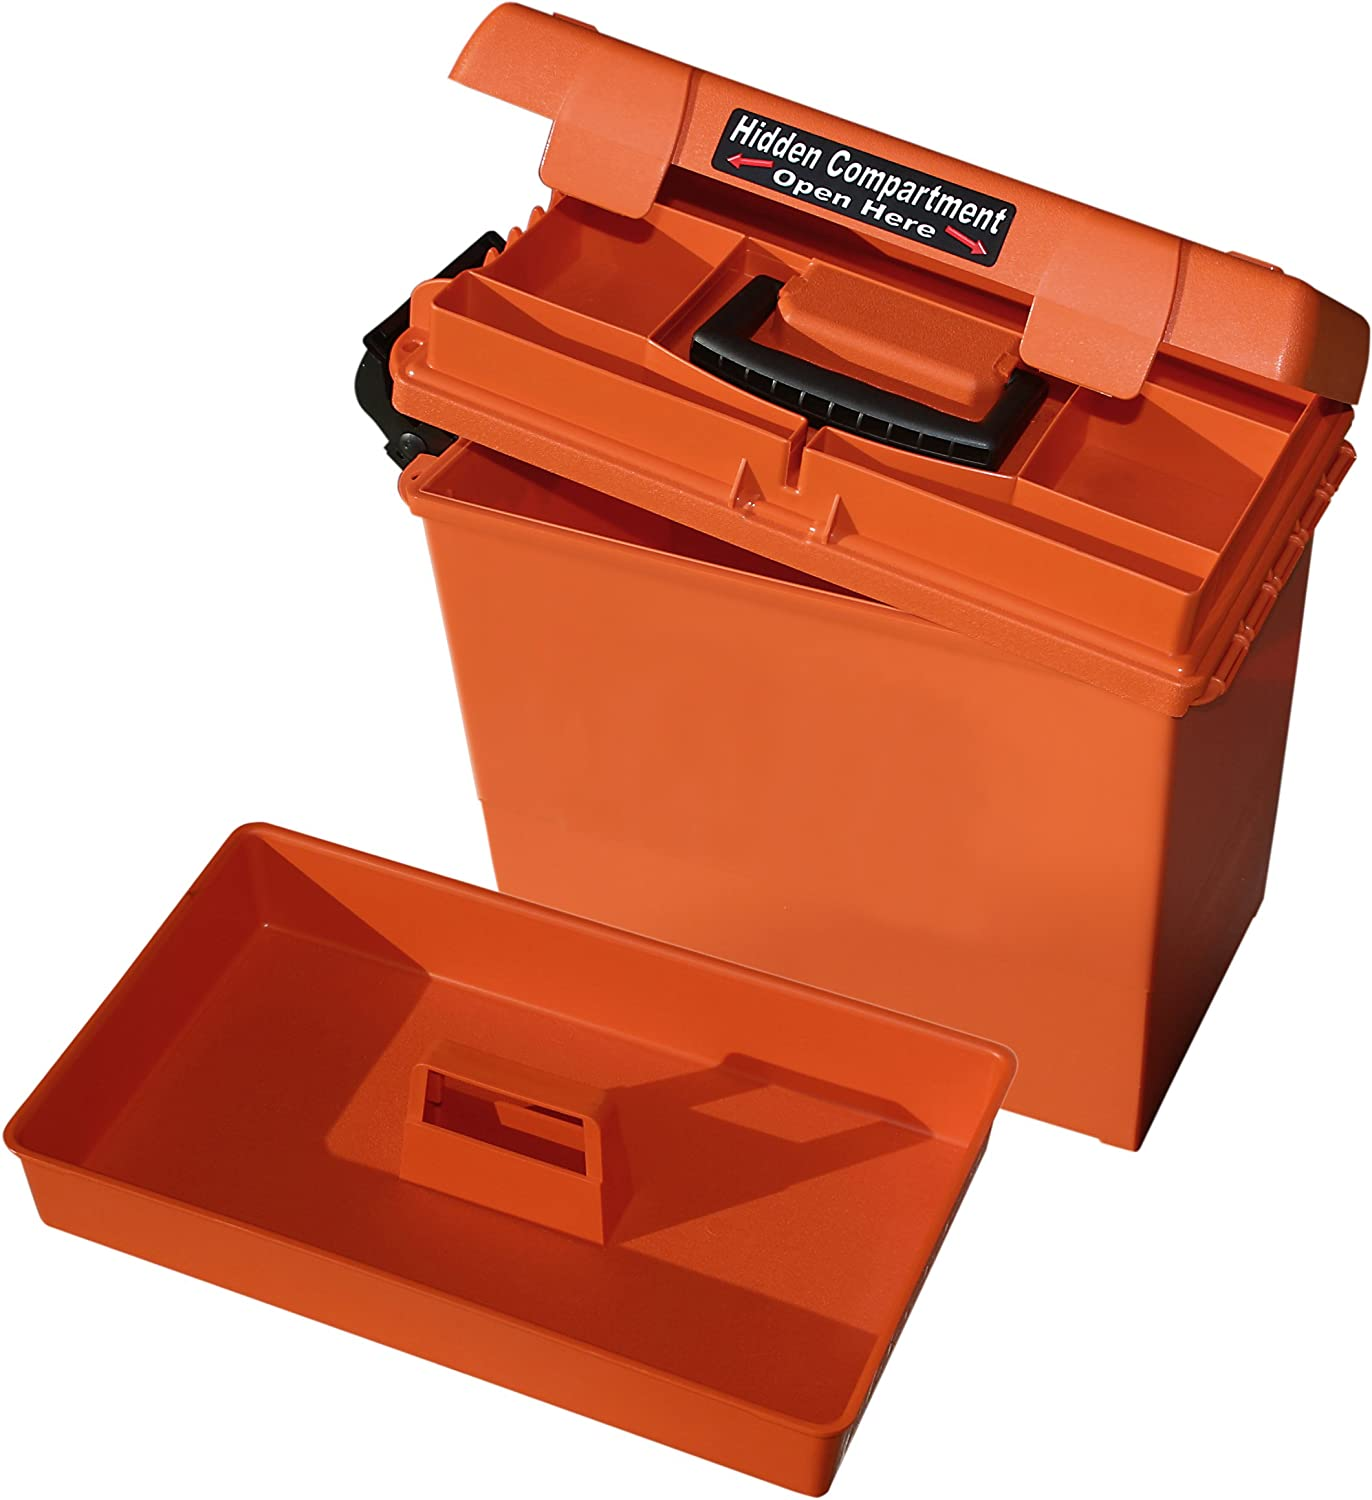 MTM SportsHerren Plus Utility Dry Box, Orange, Orange